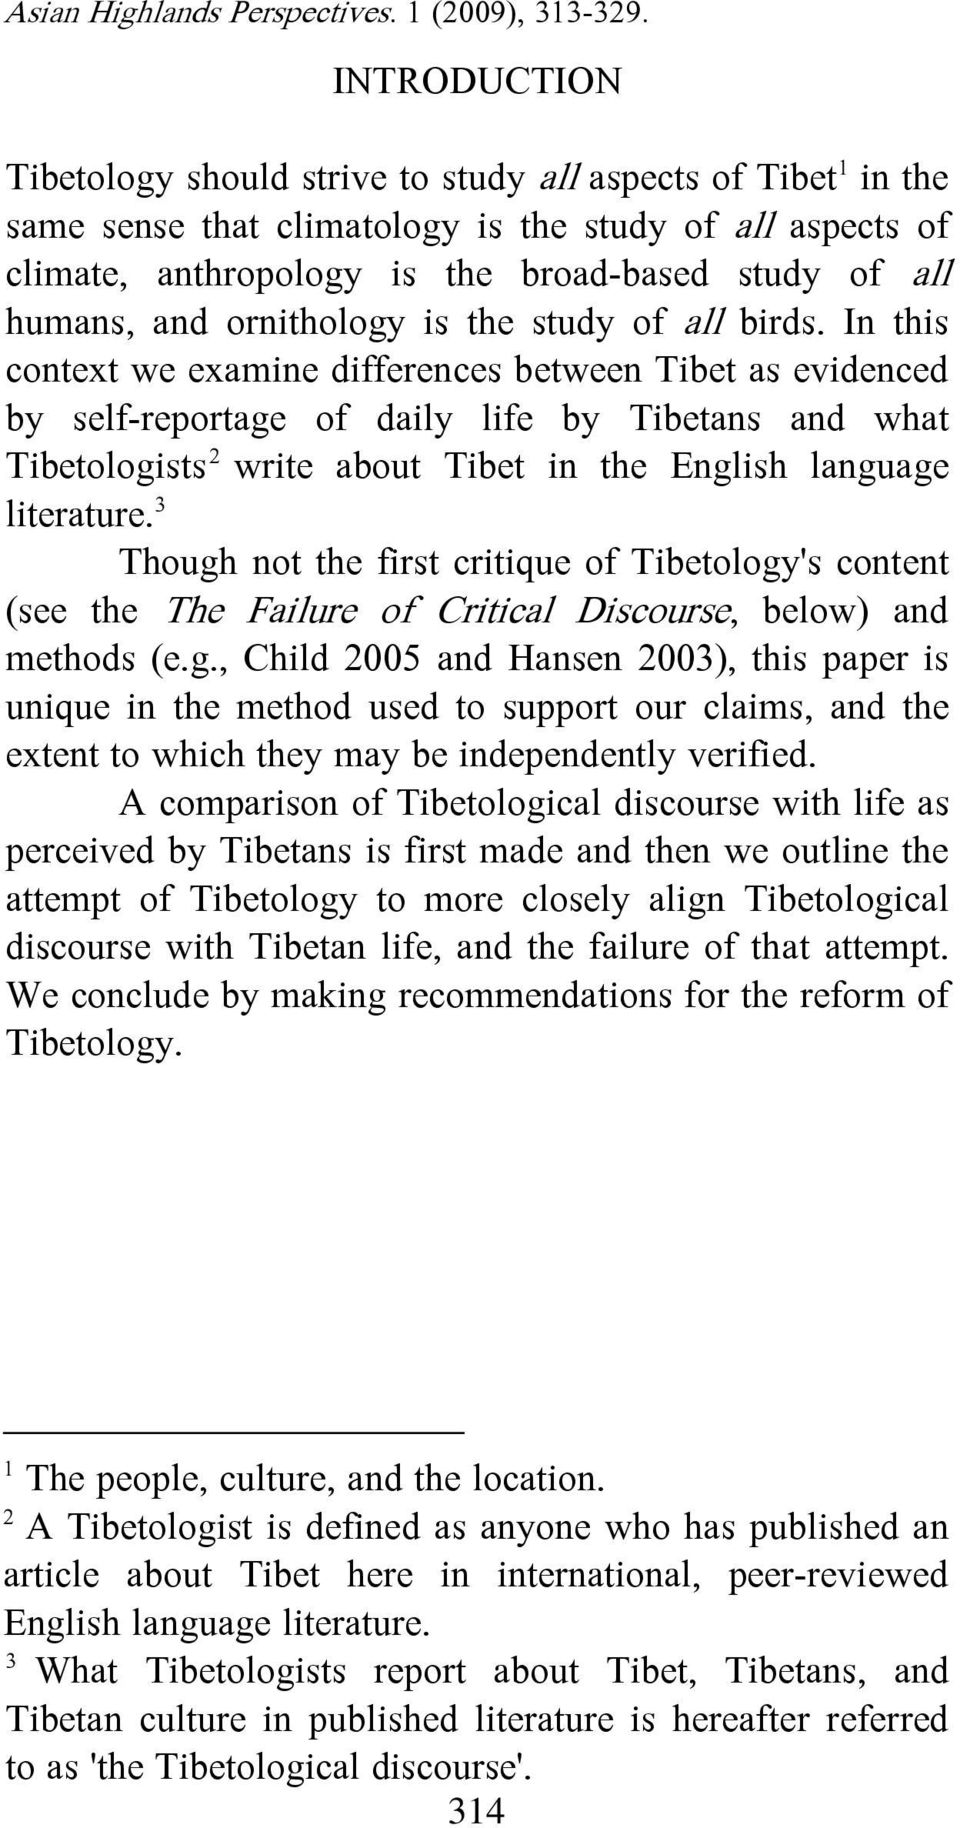 In this context we examine differences between Tibet as evidenced by self-reportage of daily life by Tibetans and what Tibetologists 2 write about Tibet in the English language literature.